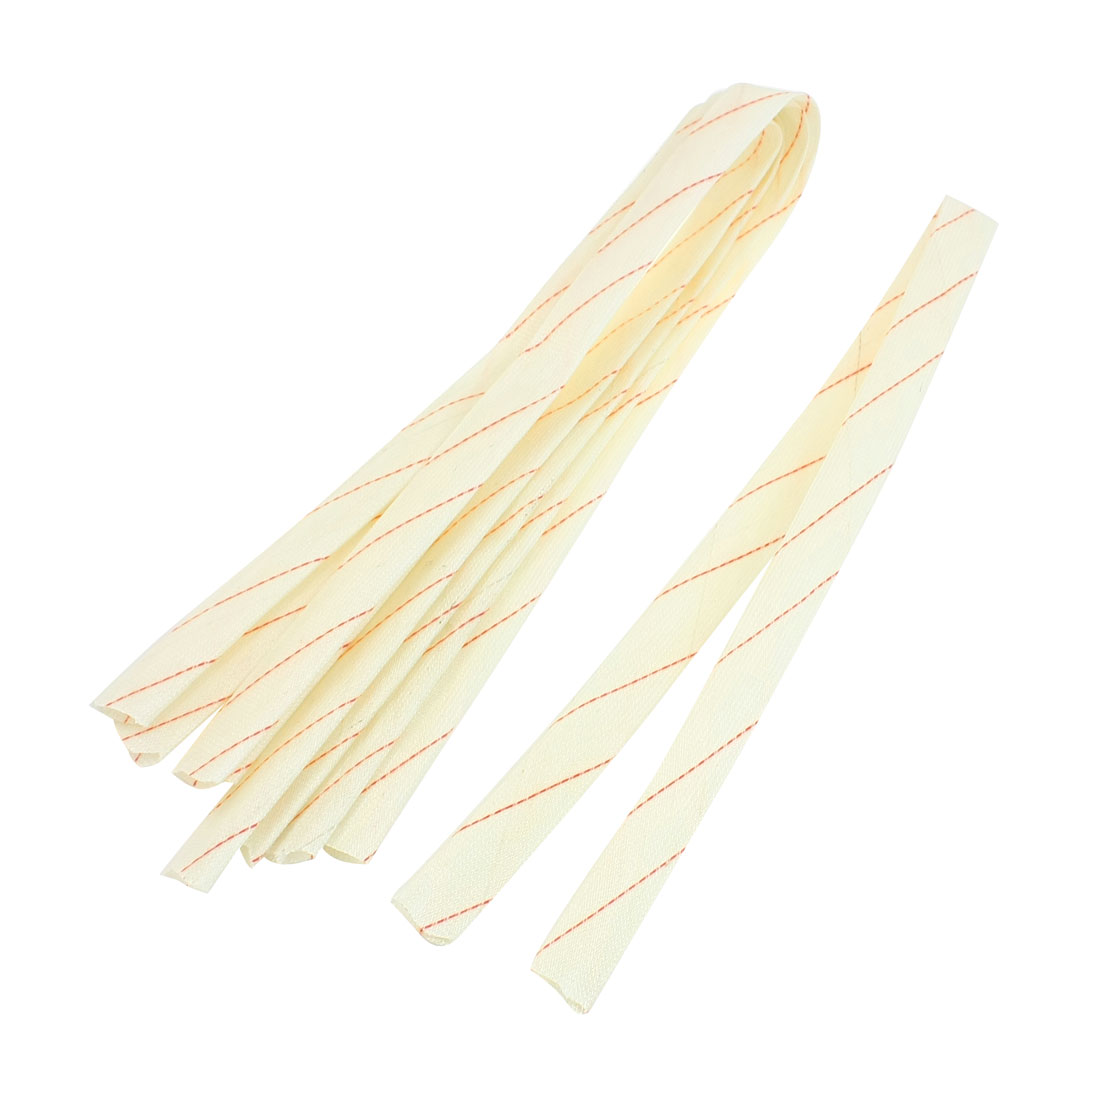 21mm x 80cm Fiberglass Insulating Sleevings 5 Pcs for Electrical Wire